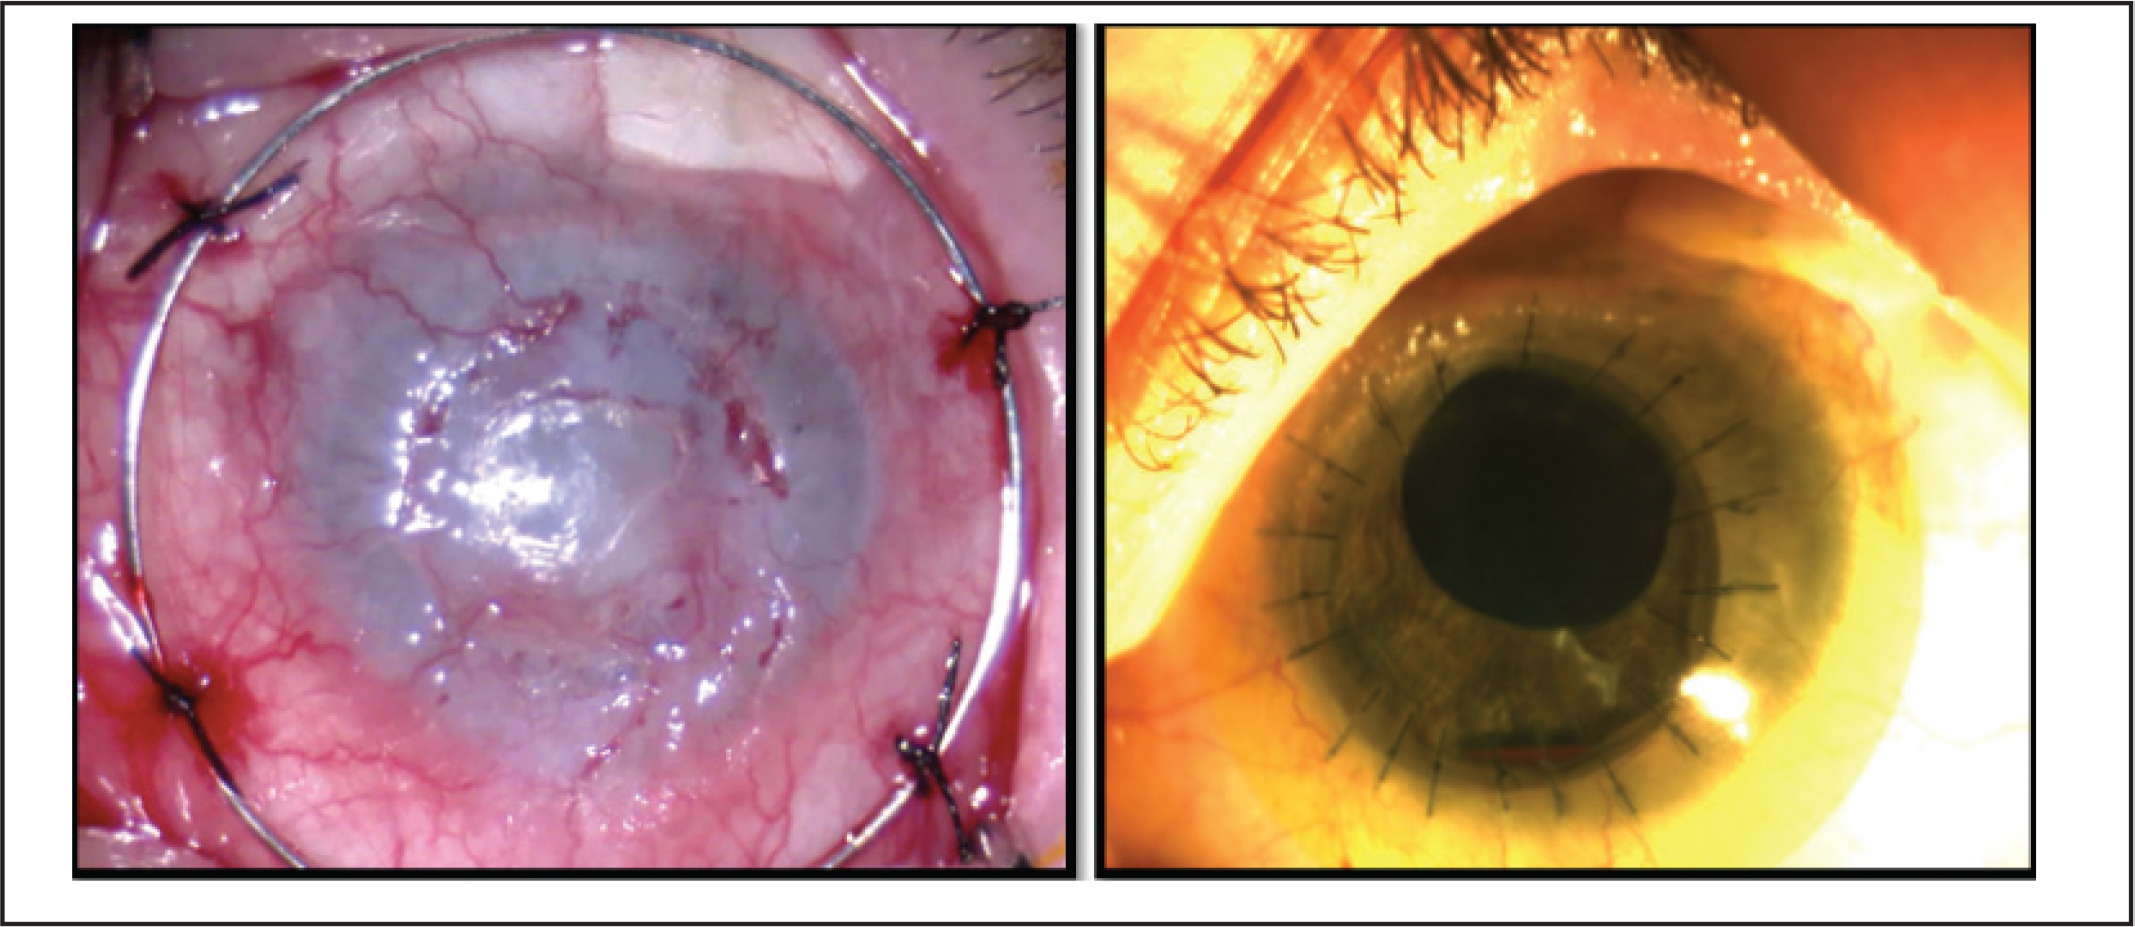 A 79-year-old woman with a history of end-stage glaucoma in the right eye and glaucoma that was treated surgically had cataract extraction surgery followed by a penetrating keratoplasty due to bullous keratopathy in the left eye. (A) She presented with a corneal abscess in the left eye. Her visual acuity on presentation was light perception. She was treated with vancomycin (50 mg/mL) and ceftazidime (33 mg/mL) drops hourly, oral acyclovir 400 mg five times daily, natamycin 5% drops every second hour, and doxycycline 100 mg once daily. Despite treatment, 2 weeks after corneal melting was noted, she underwent corneal cross-linking and the melting area was covered with a glue patch. Four months later, her visual acuity was counting fingers and the glue patch was in place. Penetrating keratoplasty was performed 2 months later.